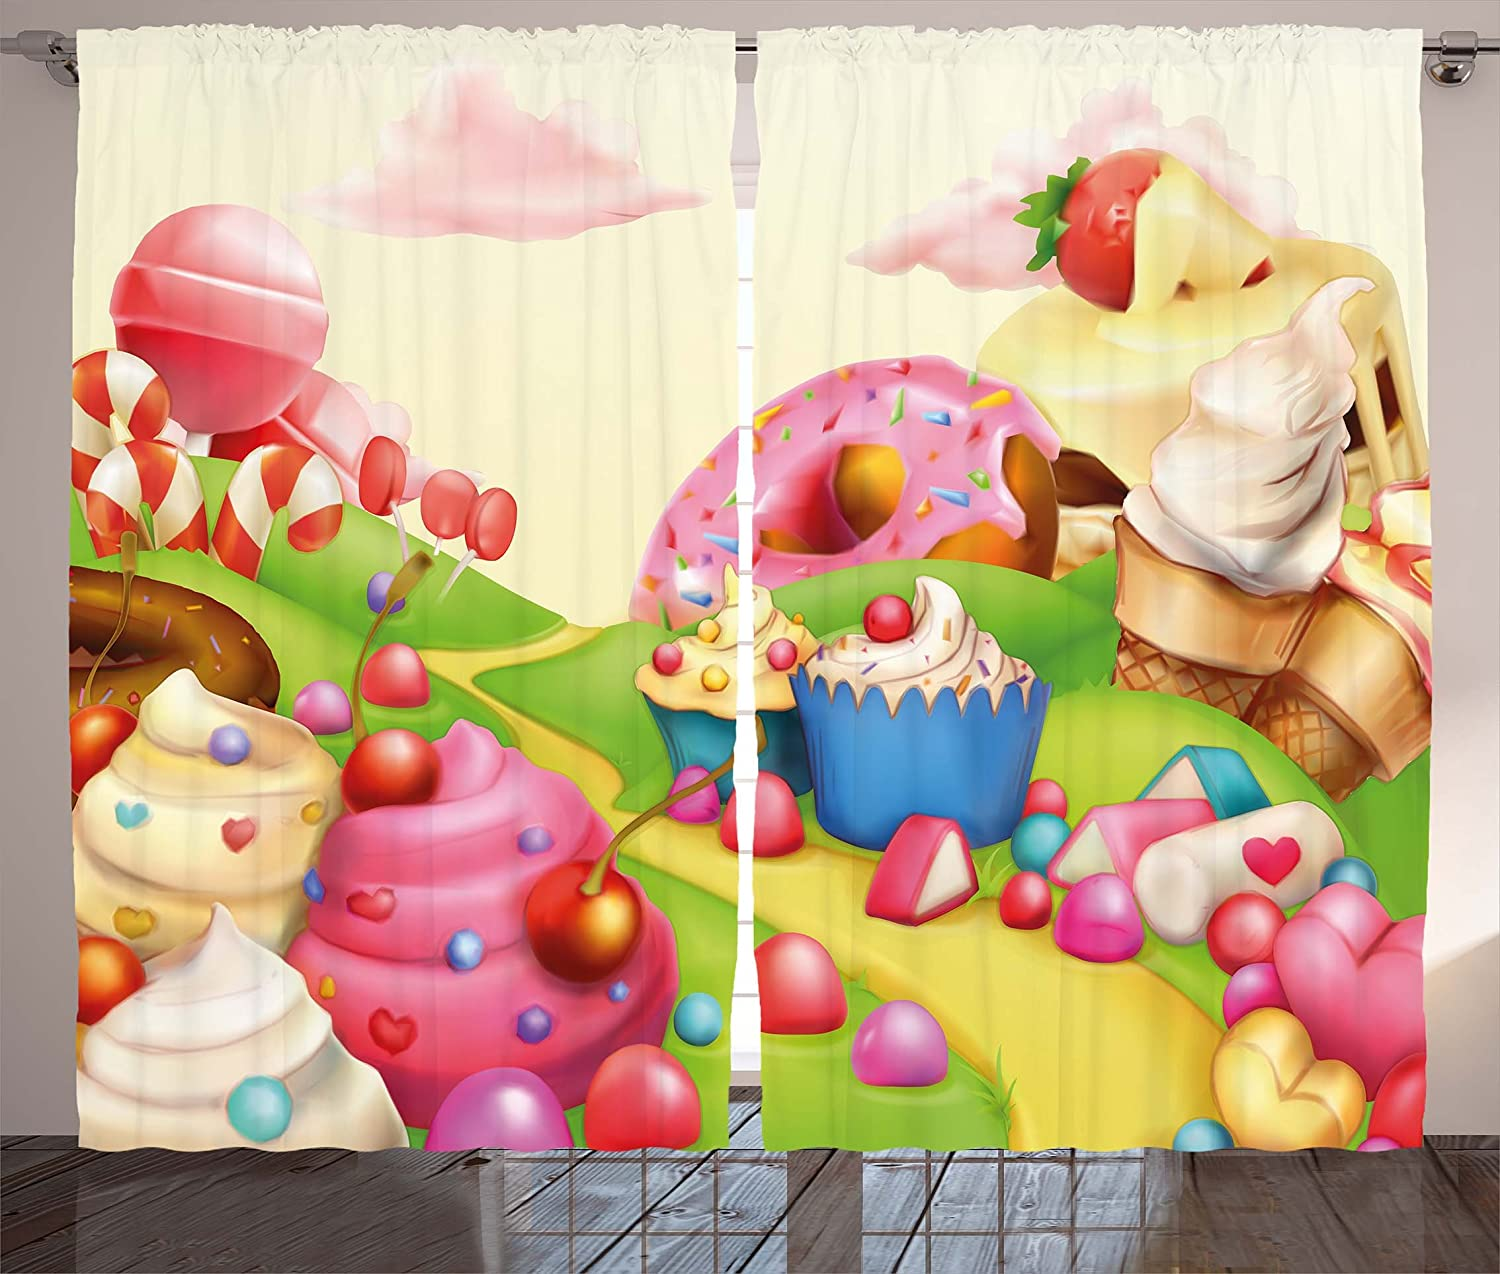 Ambesonne Pink Curtains, Food Theme Tasty Landscape of Candies Cupcakes Lollipop and Ice Cream Print, Living Room Bedroom Window Drapes 2 Panel Set, 108